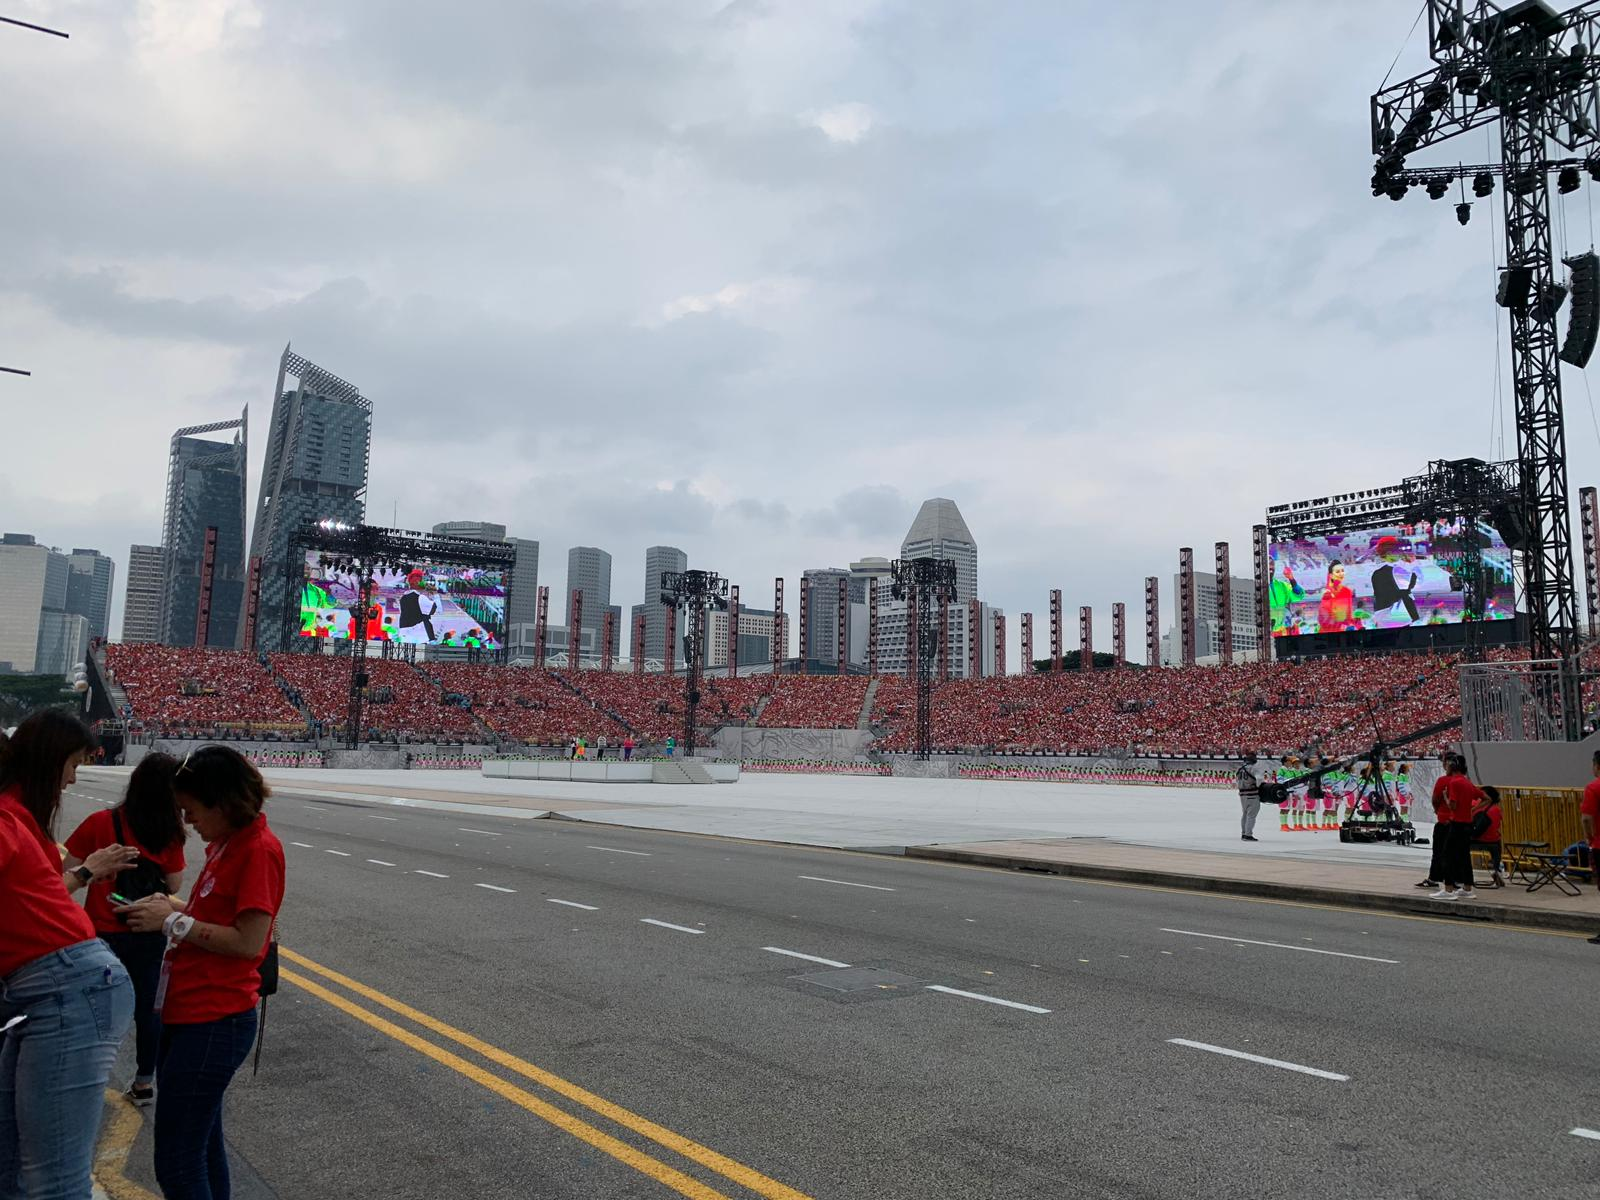 The Singapore National Day Parade is being held at the Padang. Photo courtesy: Connected to India